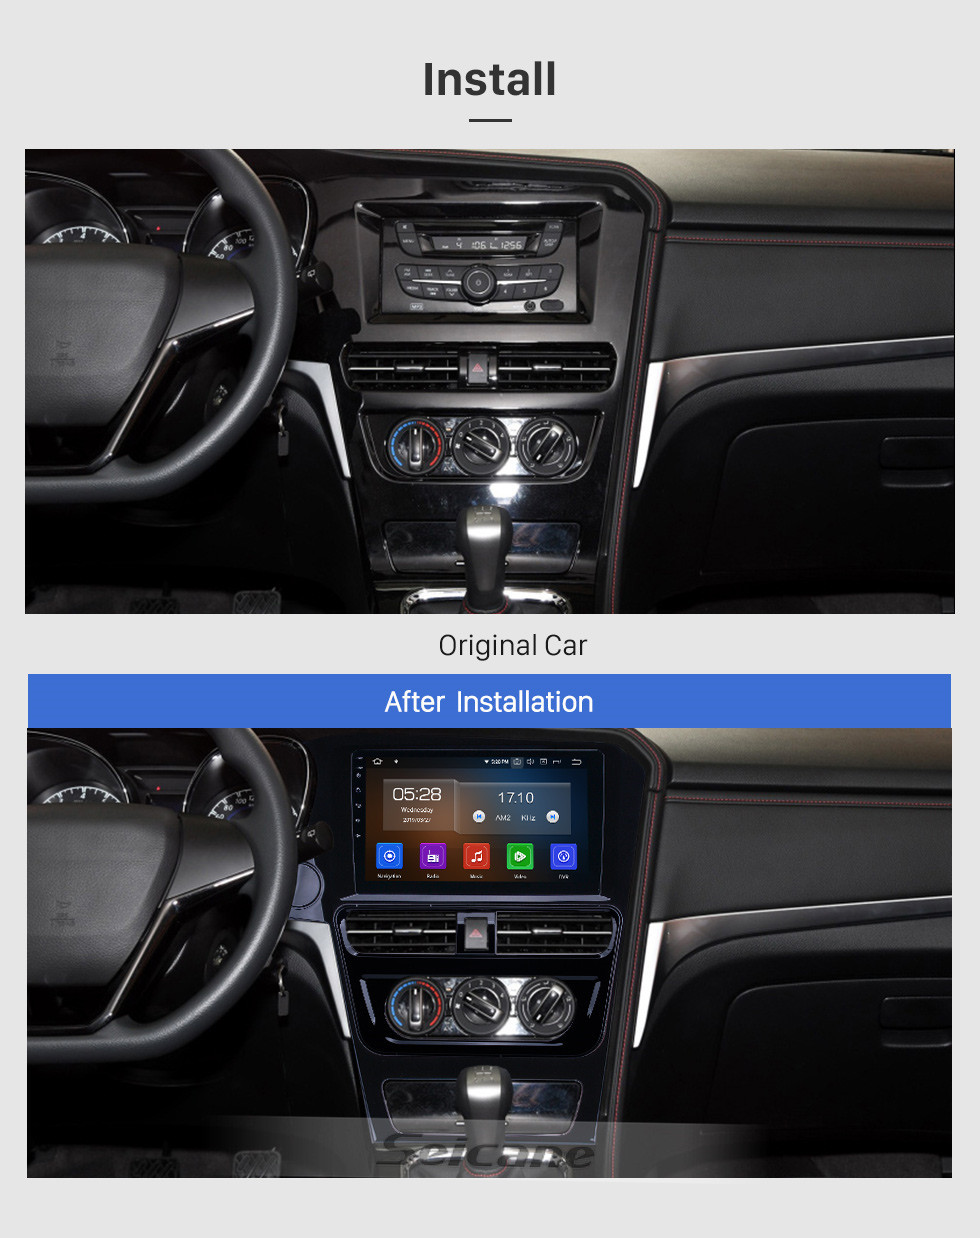 Seicane HD Touchscreen 2018-2019 Venucia T70 Low Version Android 10.0 10.1 inch GPS Navigation Radio Bluetooth AUX Carplay support Rear camera